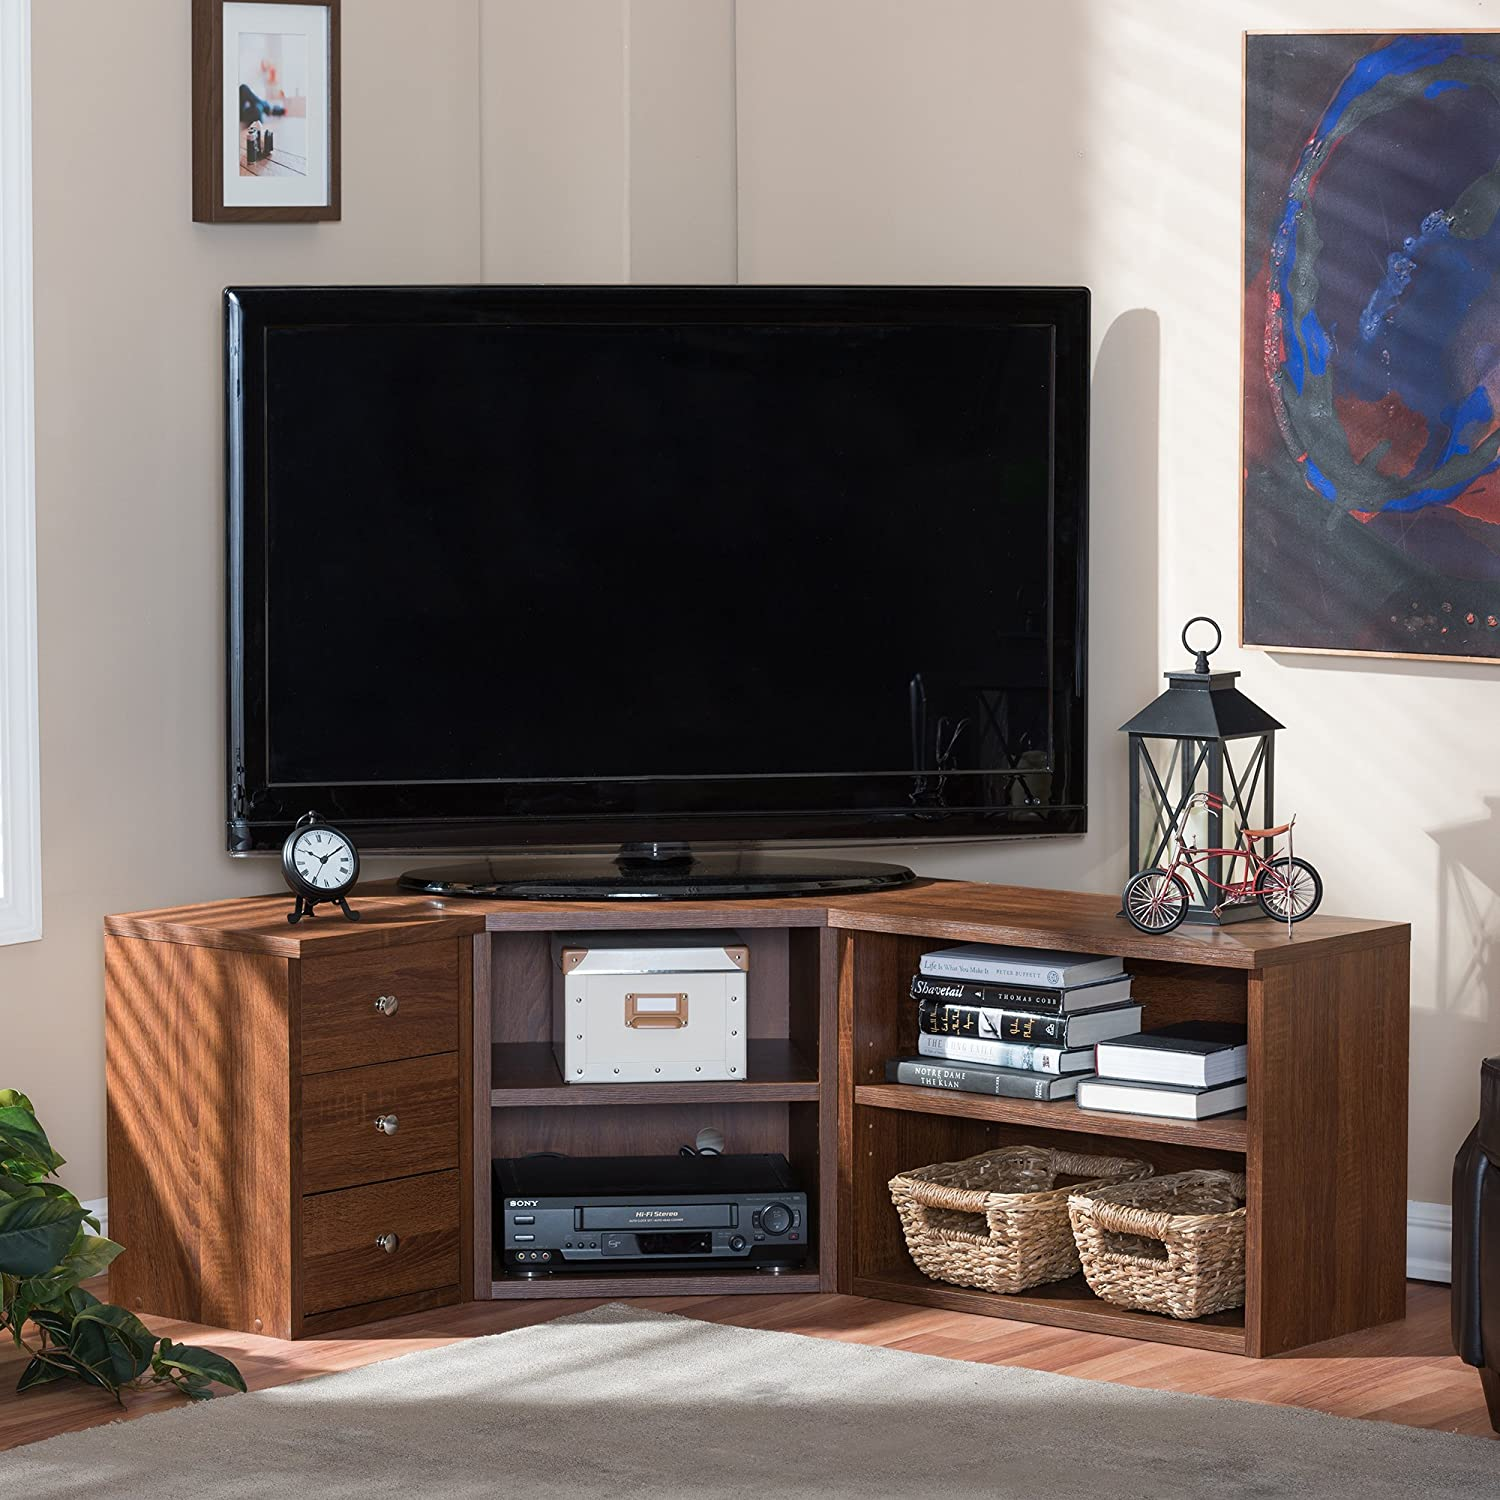 tv tables set for usedture rooms leather me ideas with brown near room furniturep sets sectional go to living console under extraordinary included on